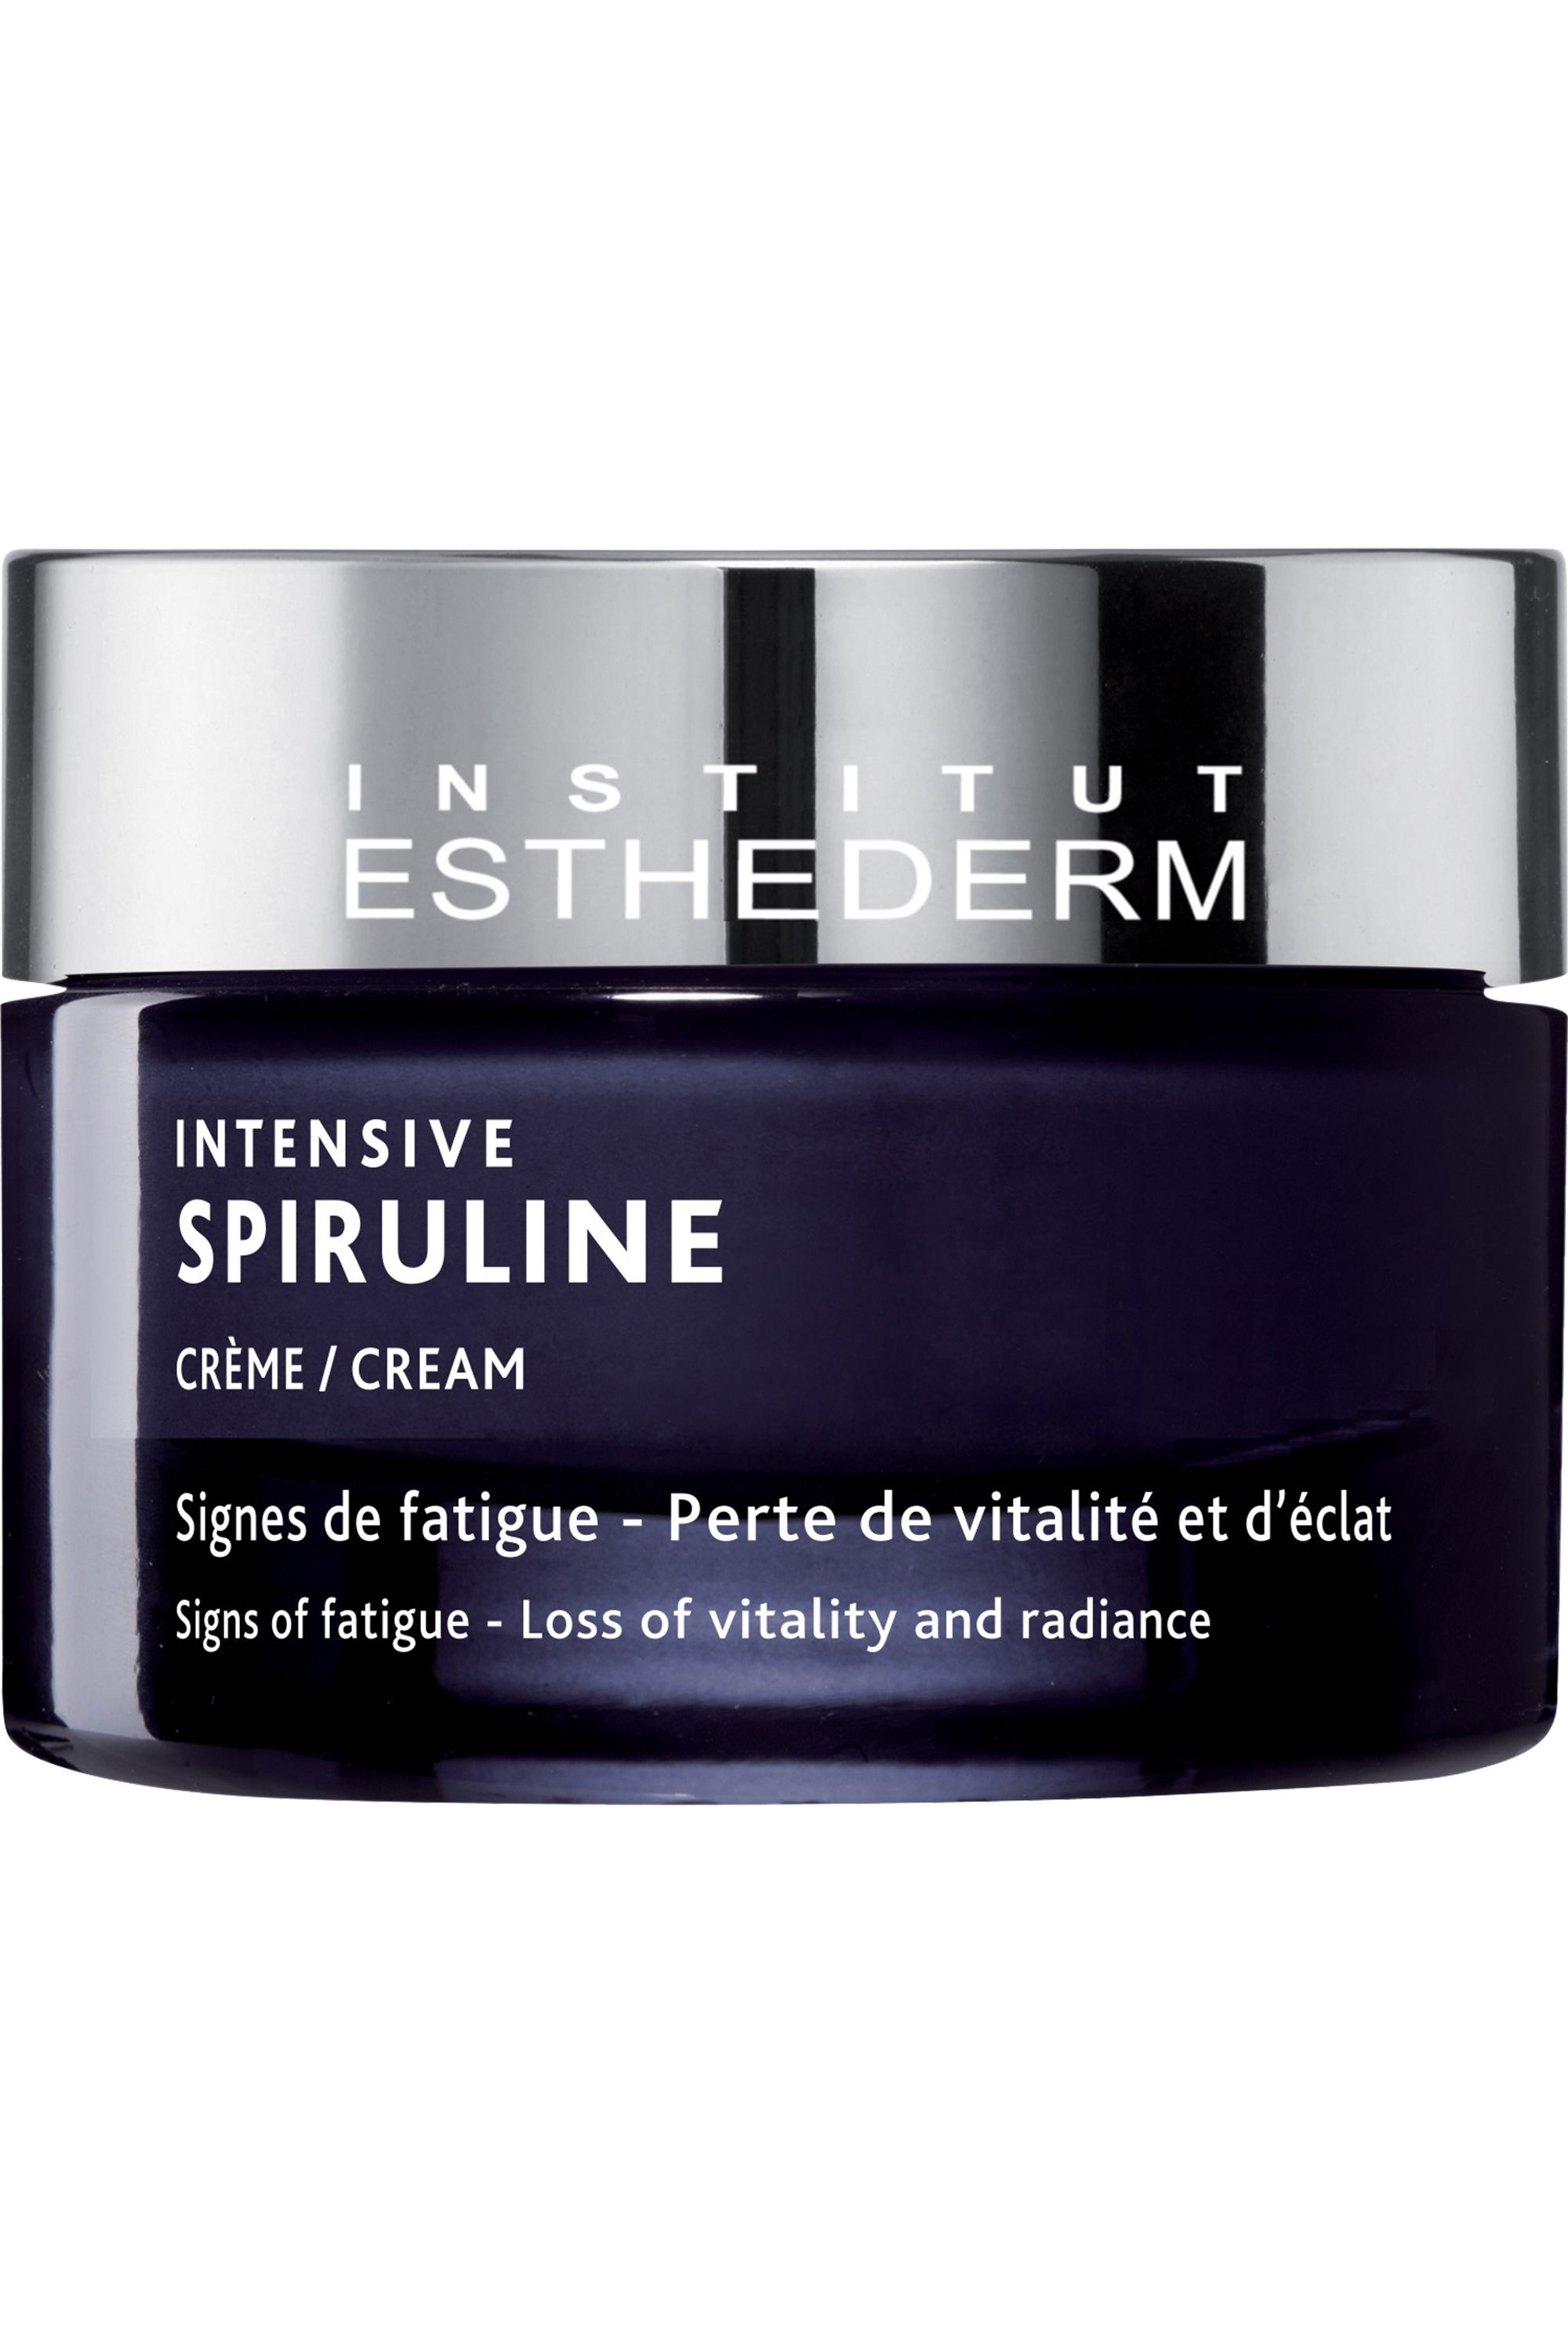 Blissim : Institut Esthederm - Crème anti-fatigue Intensive Spiruline - Crème anti-fatigue Intensive Spiruline